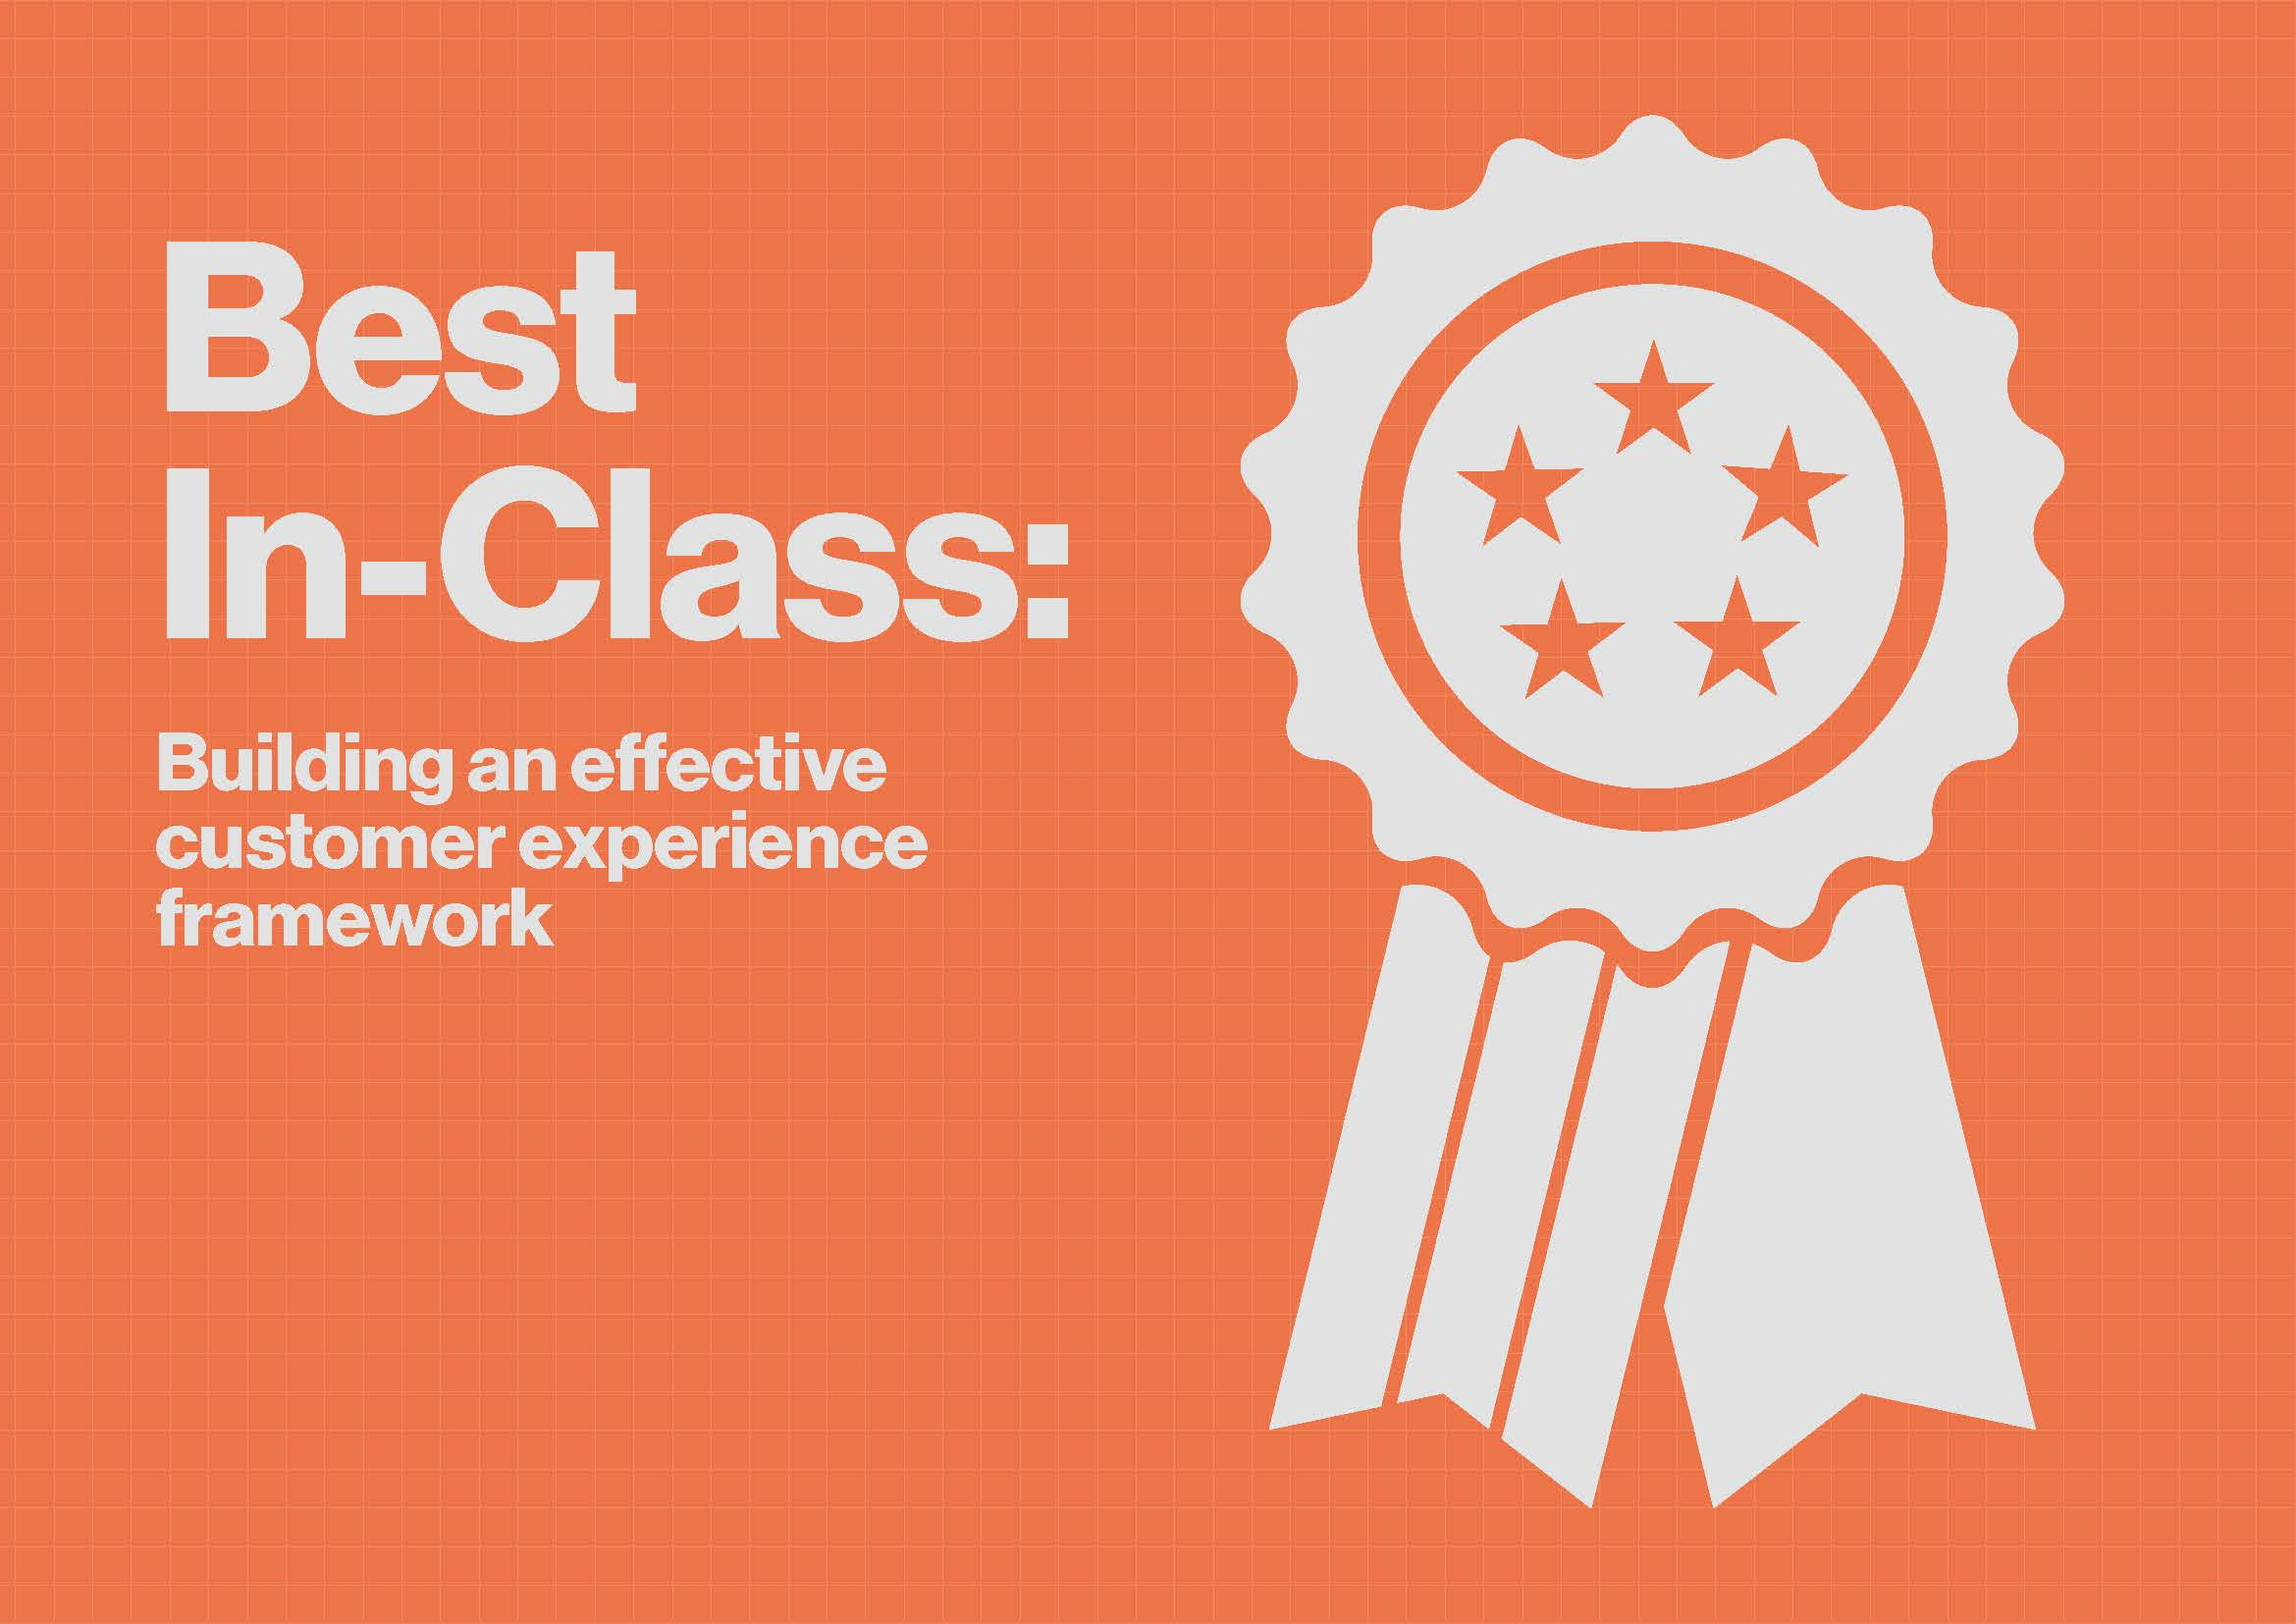 Download the Article - Best In-Class: Building an effective customer experience framework